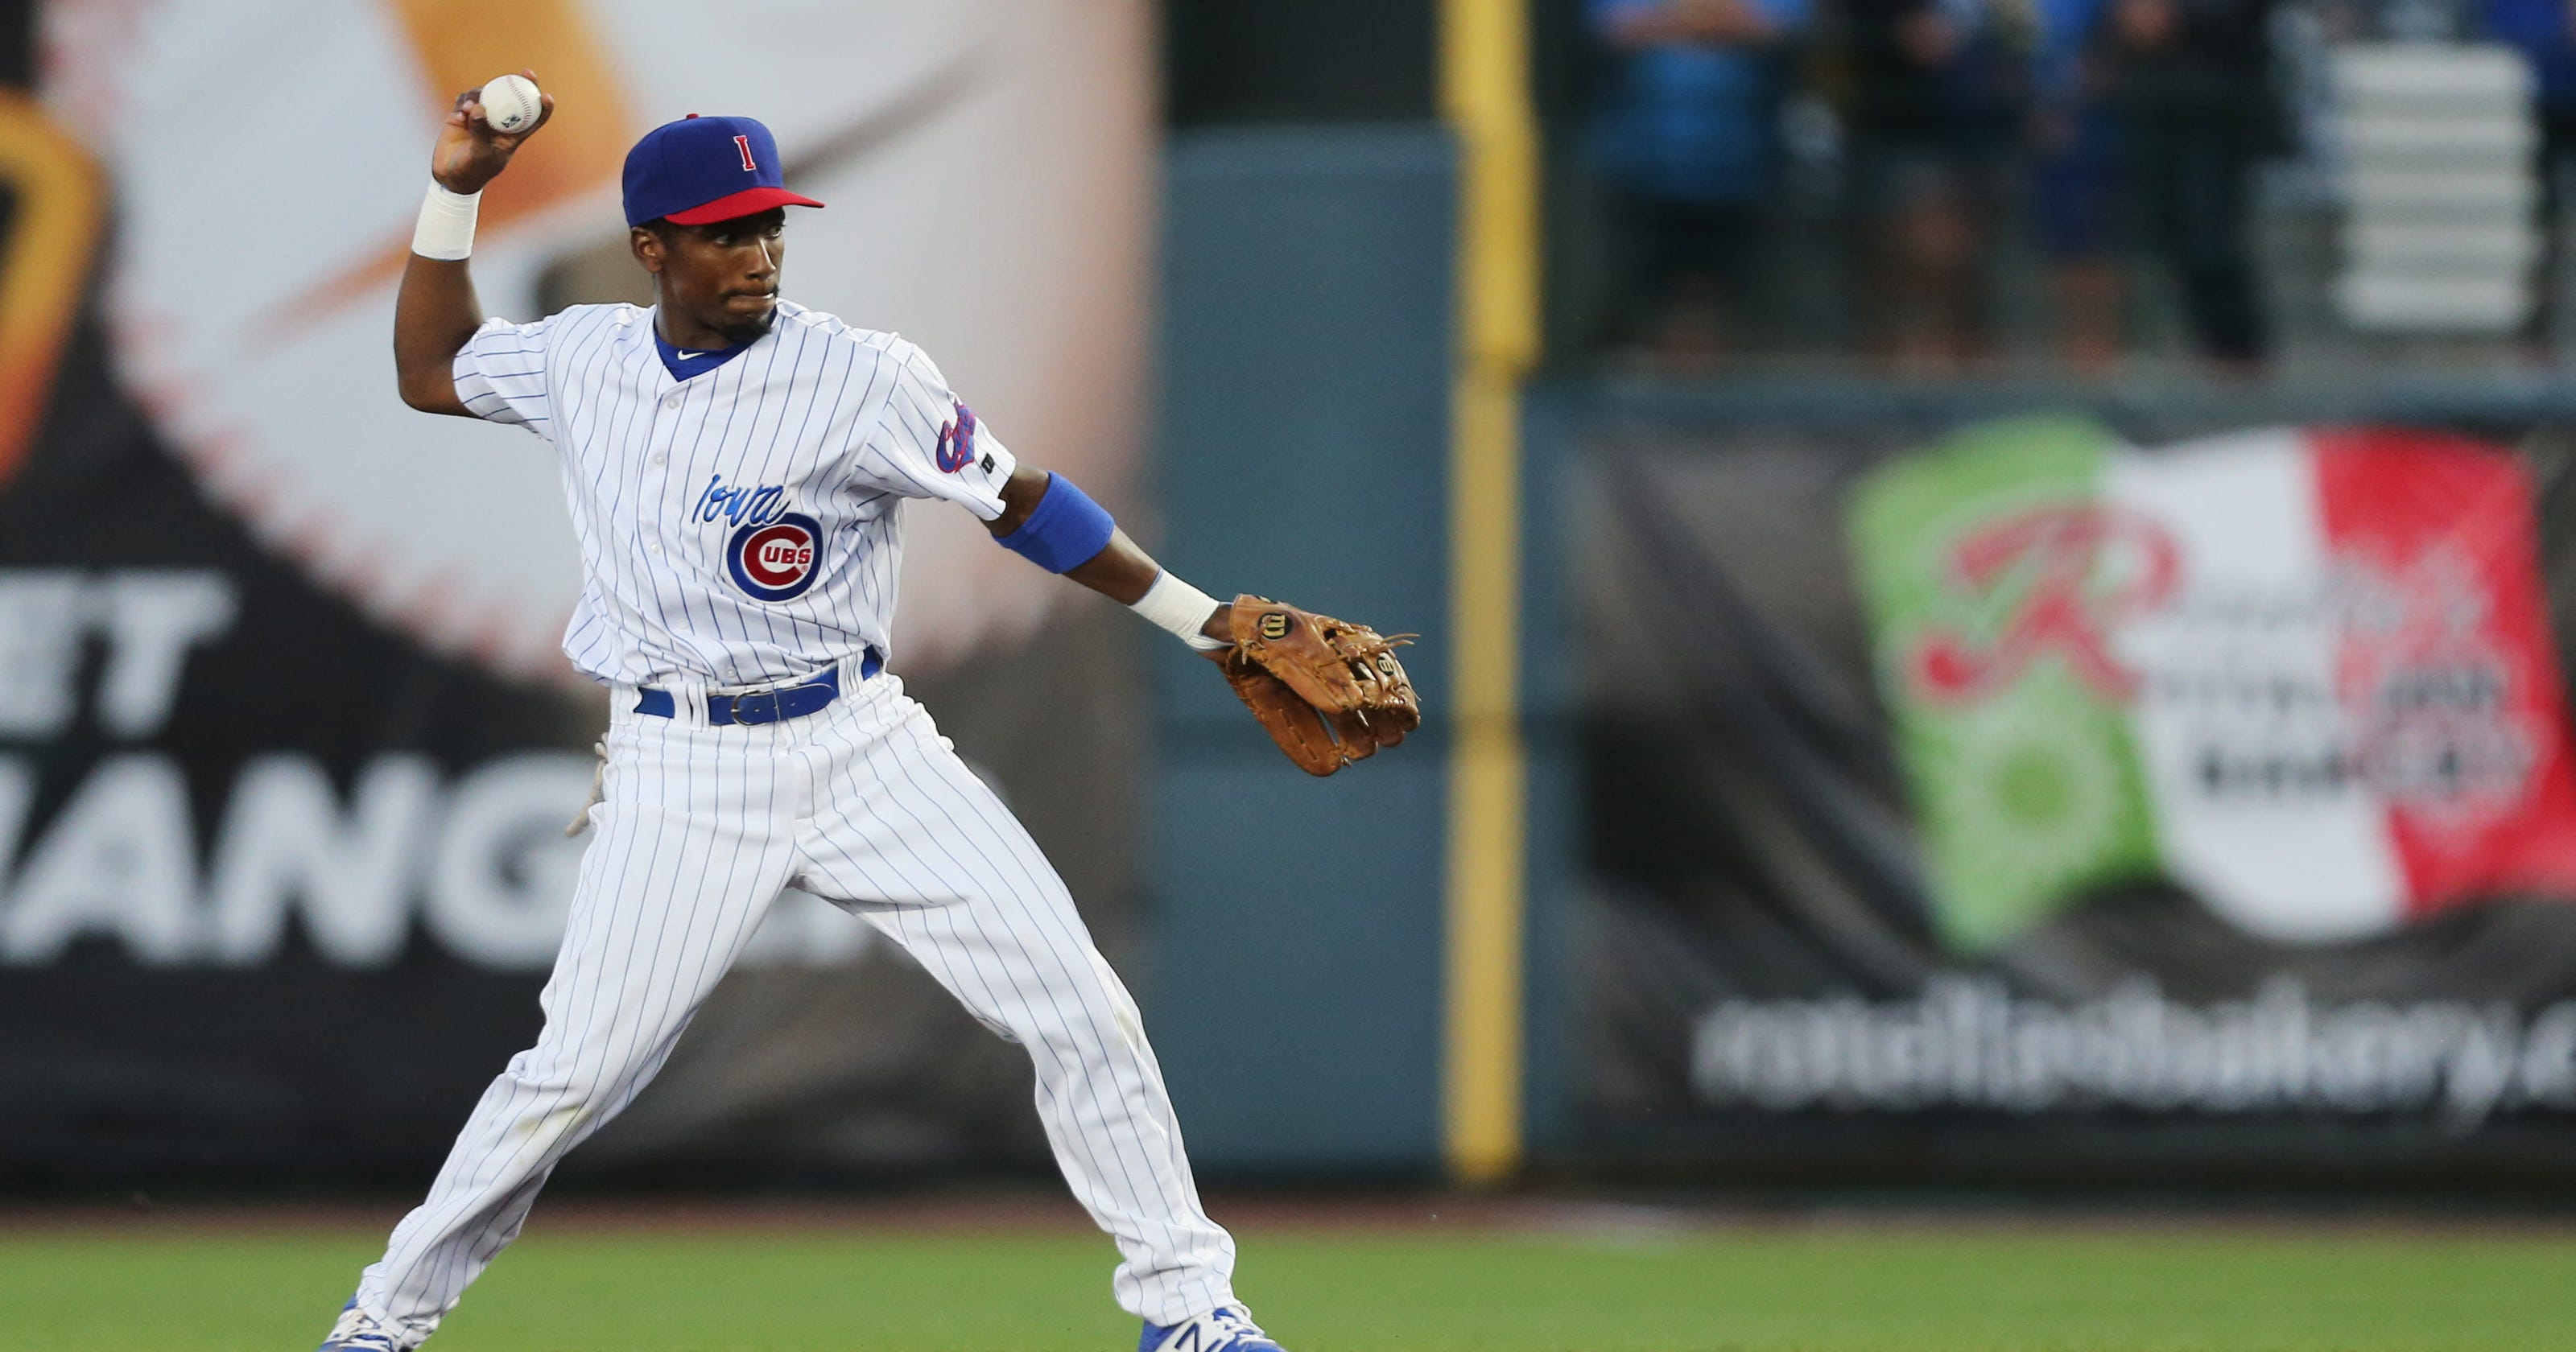 Jemile Weeks still plugging away with the Iowa Cubs